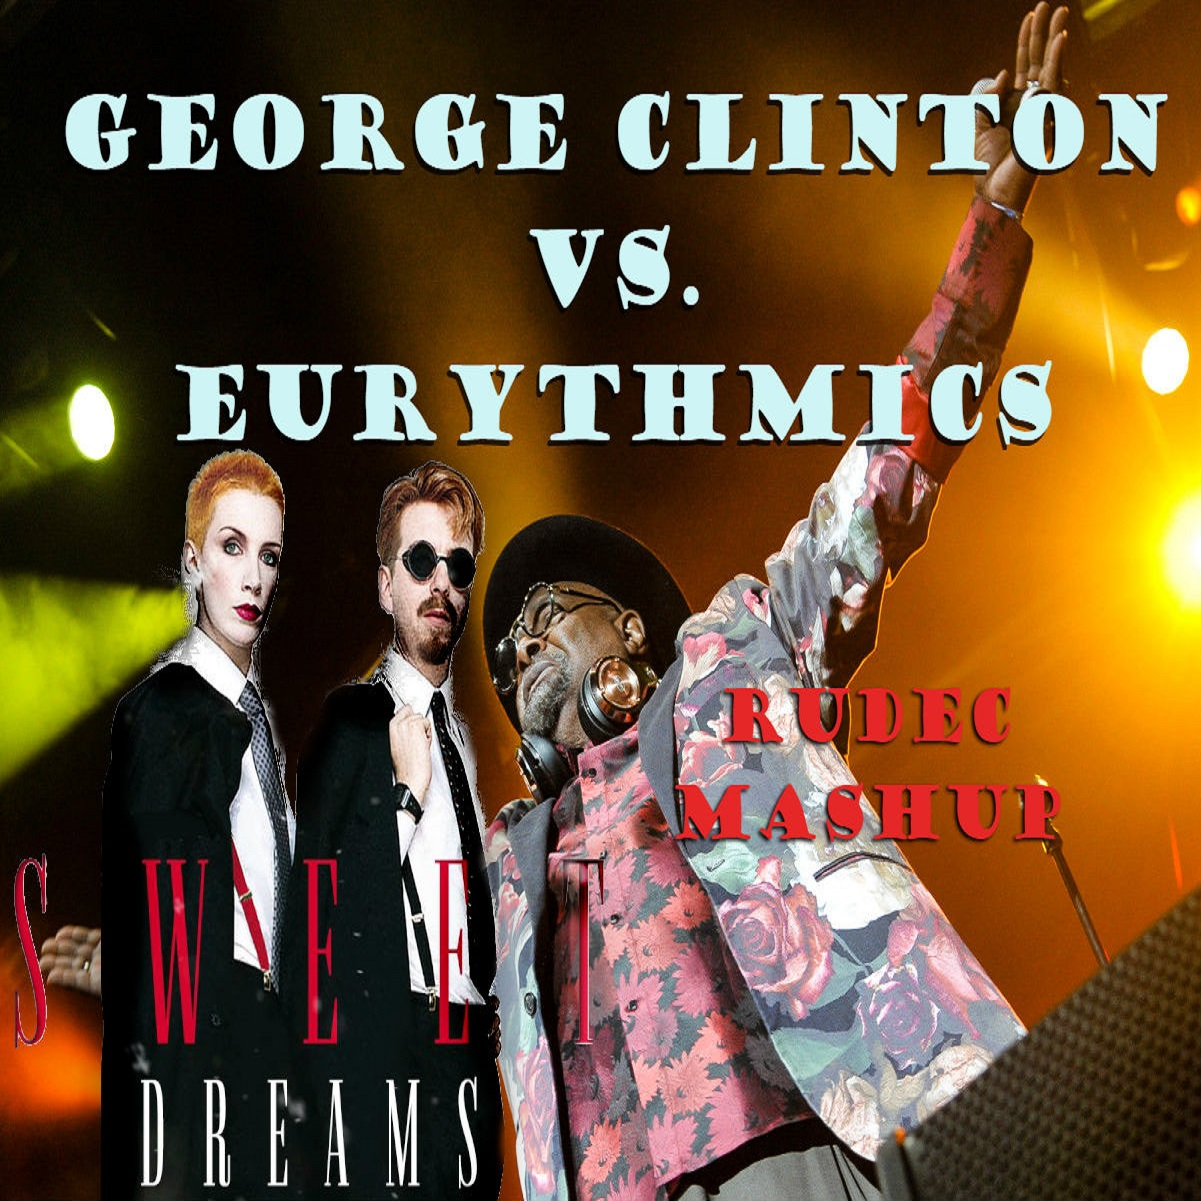 Eurythmics - Sweet Dreams (but it's playing George Clinton - Man's Best Friend)